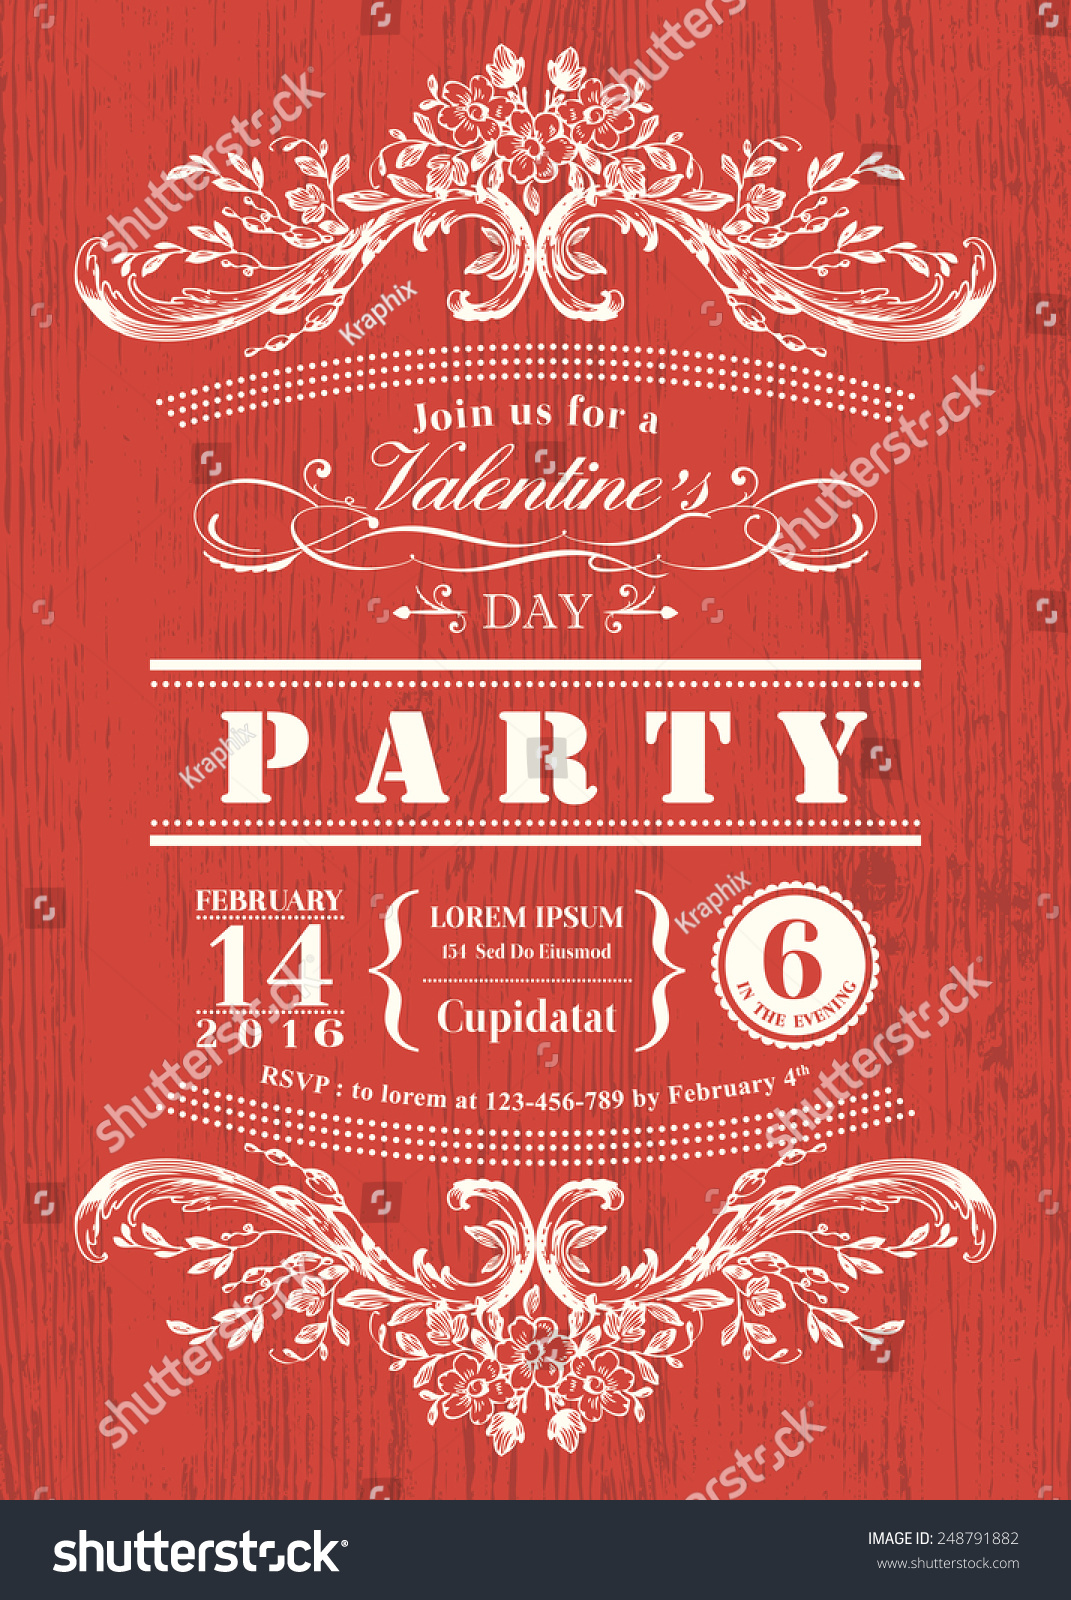 Valentine Day Card Party Invitation Vintage Stock Vector 248791882 ...